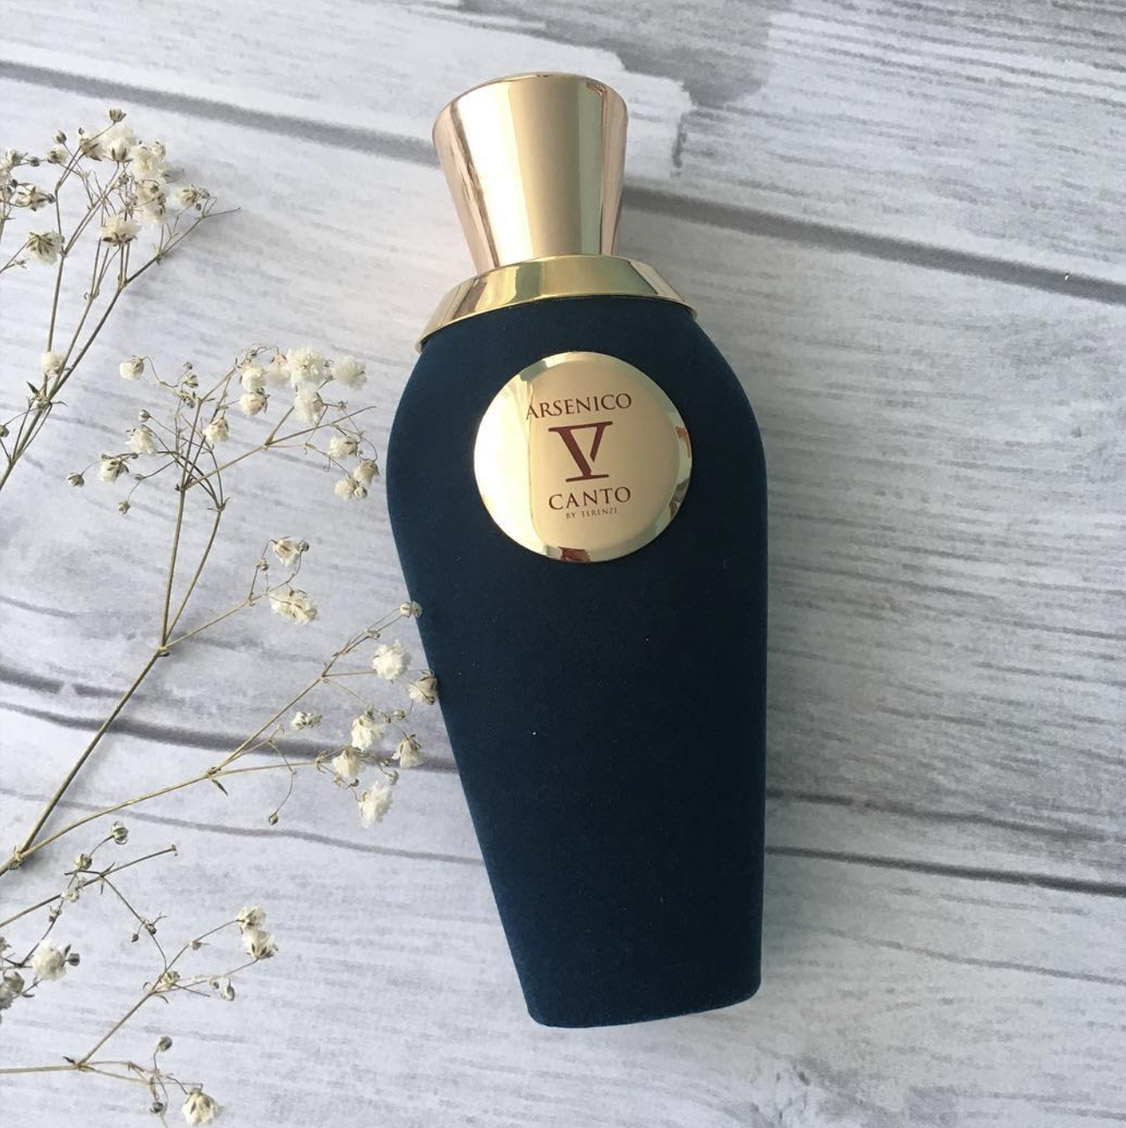 Parfum musthave v Canto Arsenico